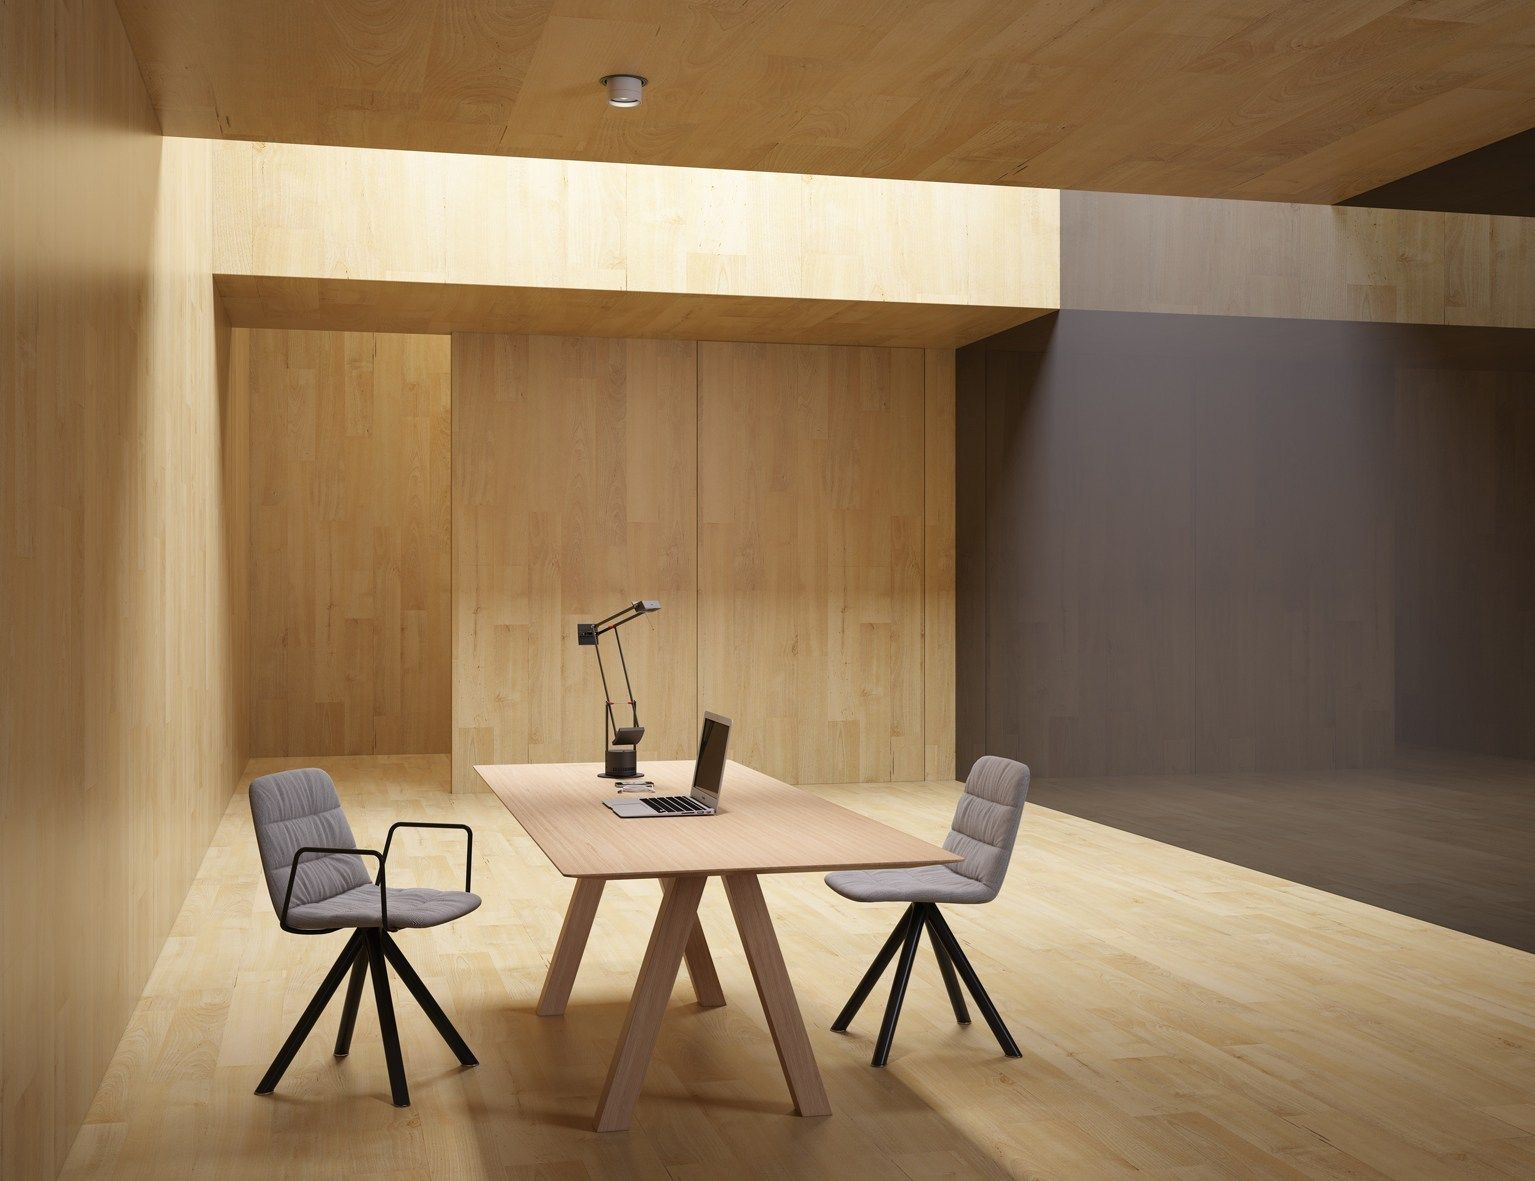 John Pawson Muebles - Trestle Table By John Pawson Now There Is The New Counter Version [mjhdah]https://s-media-cache-ak0.pinimg.com/originals/2e/98/e0/2e98e09614ae163e8ffba497fc18875c.jpg